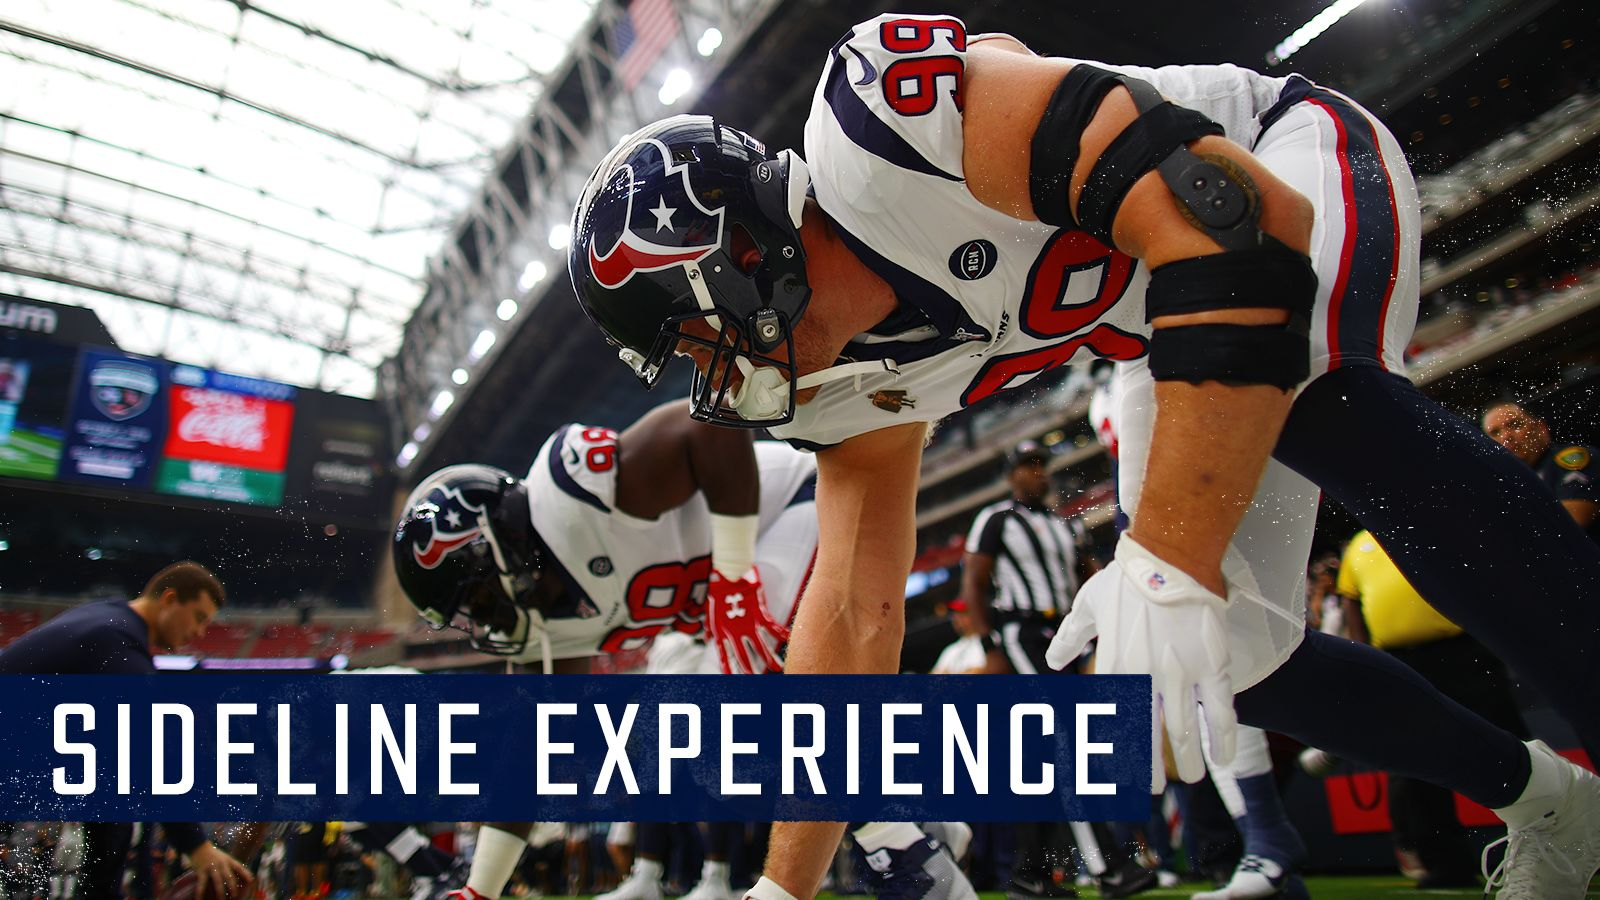 Sideline Experience